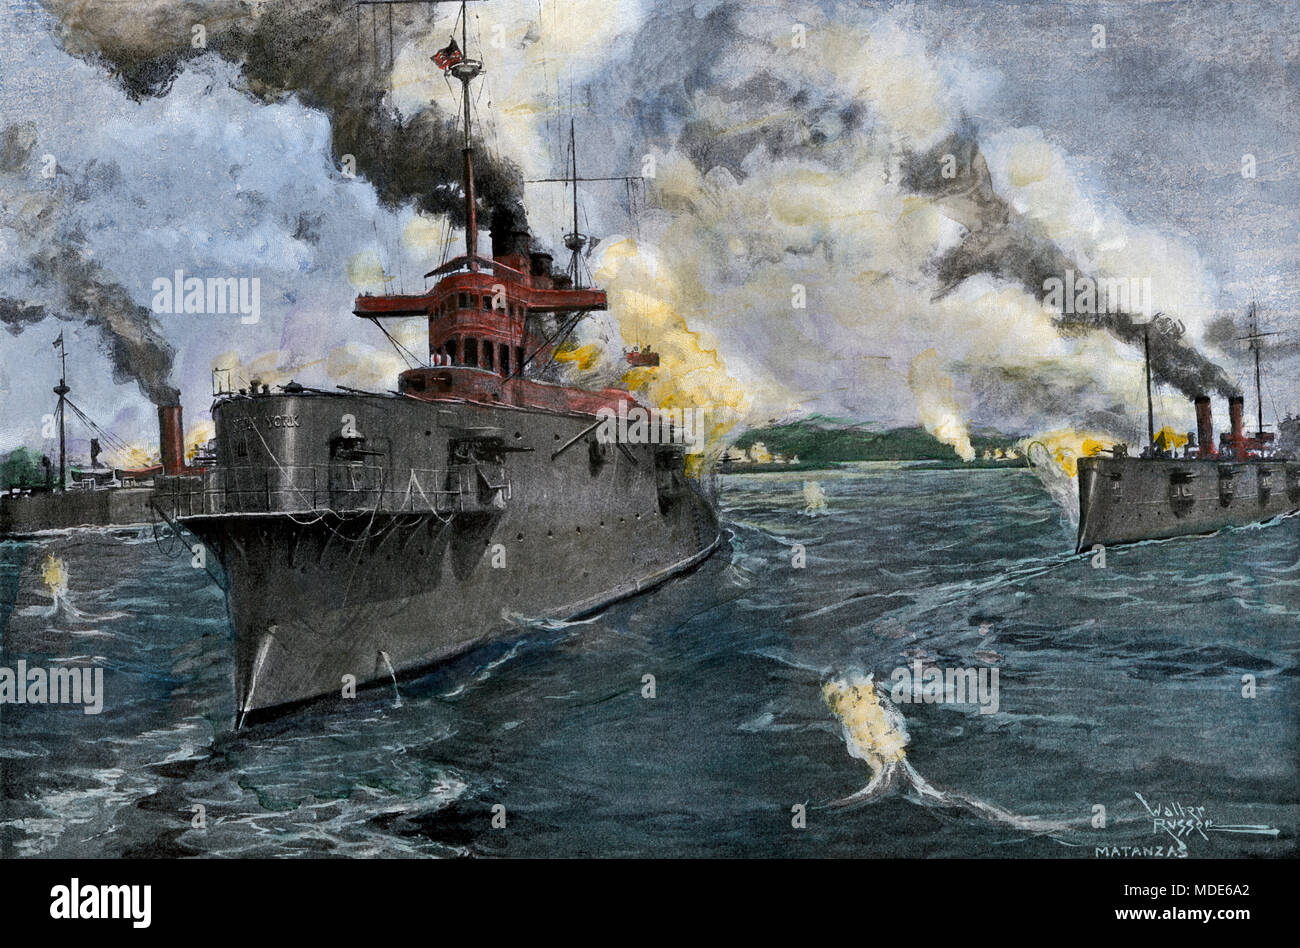 US naval bombardment of Matanzas, Cuba, during the Spanish-American War, 1898. Hand-colored halftone of an illustration - Stock Image